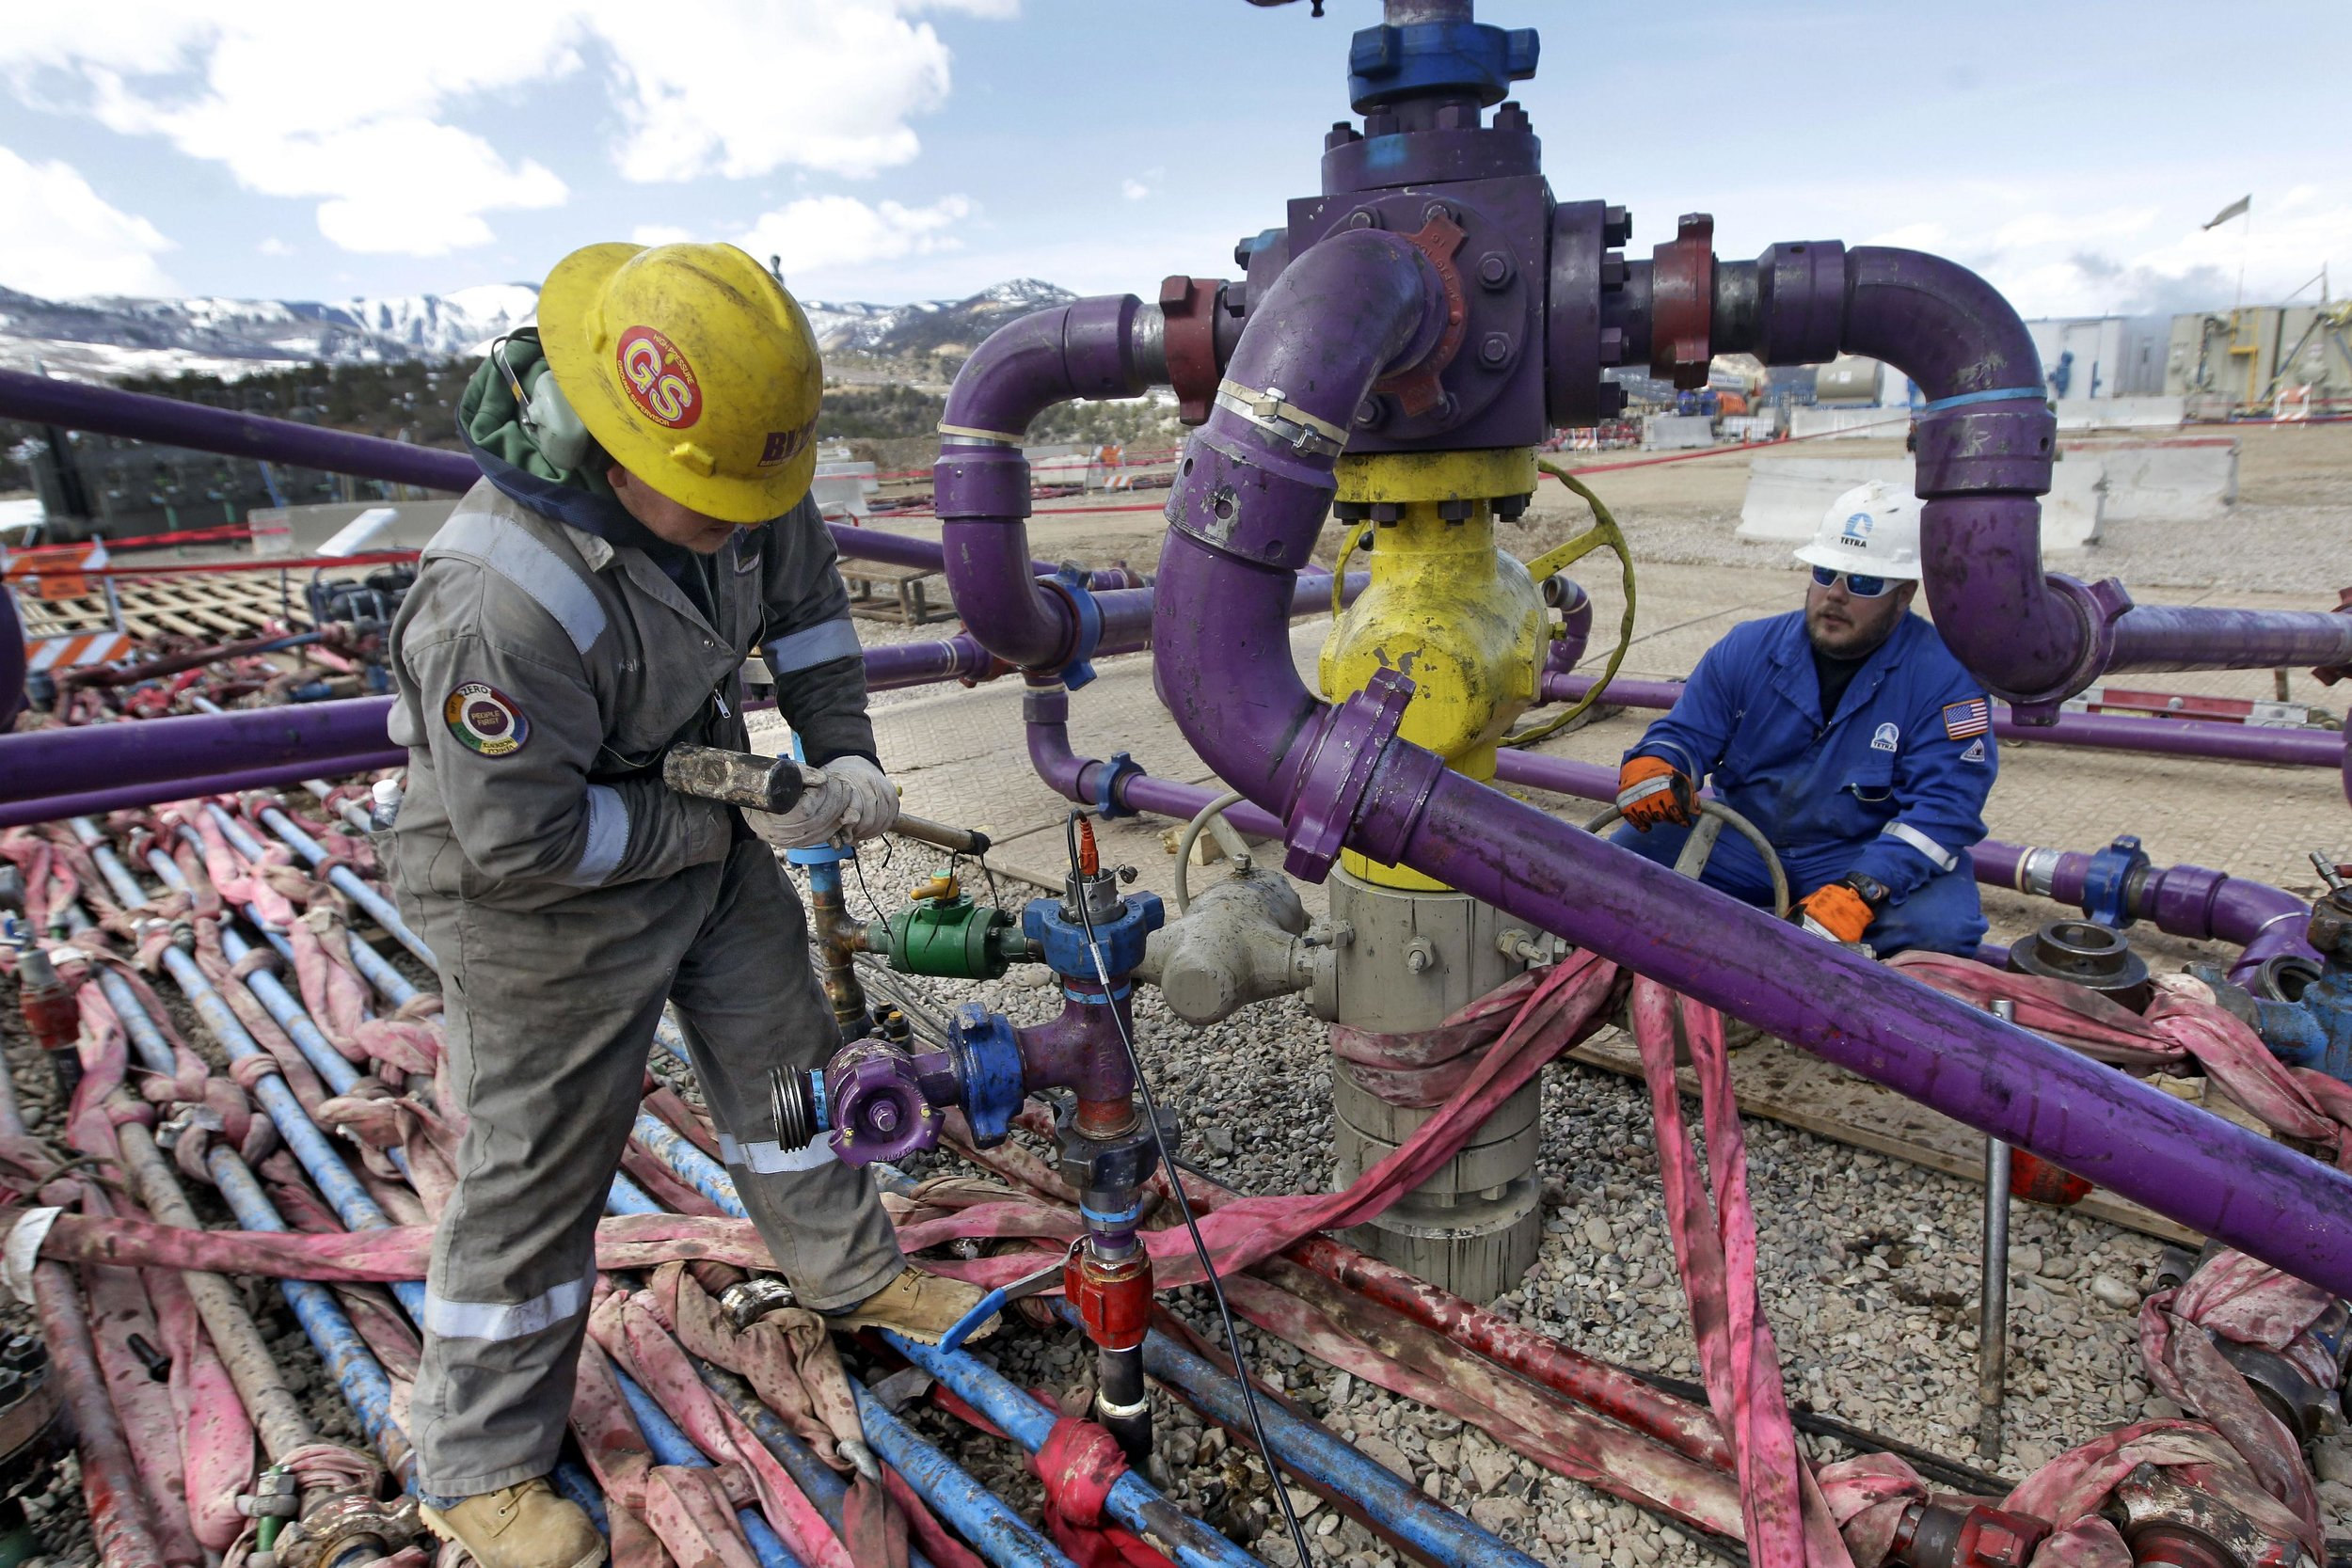 """FILE - In this March 29, 2013 file photo, workers tend to a well head during a hydraulic fracturing operation at an Encana Oil & Gas (USA) Inc. gas well outside Rifle, in western Colorado. The Obama administration is proposing a rule that would require companies that drill for oil and natural gas on federal lands to publicly disclose chemicals used in hydraulic fracturing operations. The new """"fracking"""" rule replaces a draft proposed last year that was withdrawn amid industry complaints that federal regulation could hinder an ongoing boom in natural gas production. (AP Photo/ Brennan Linsley, File)"""